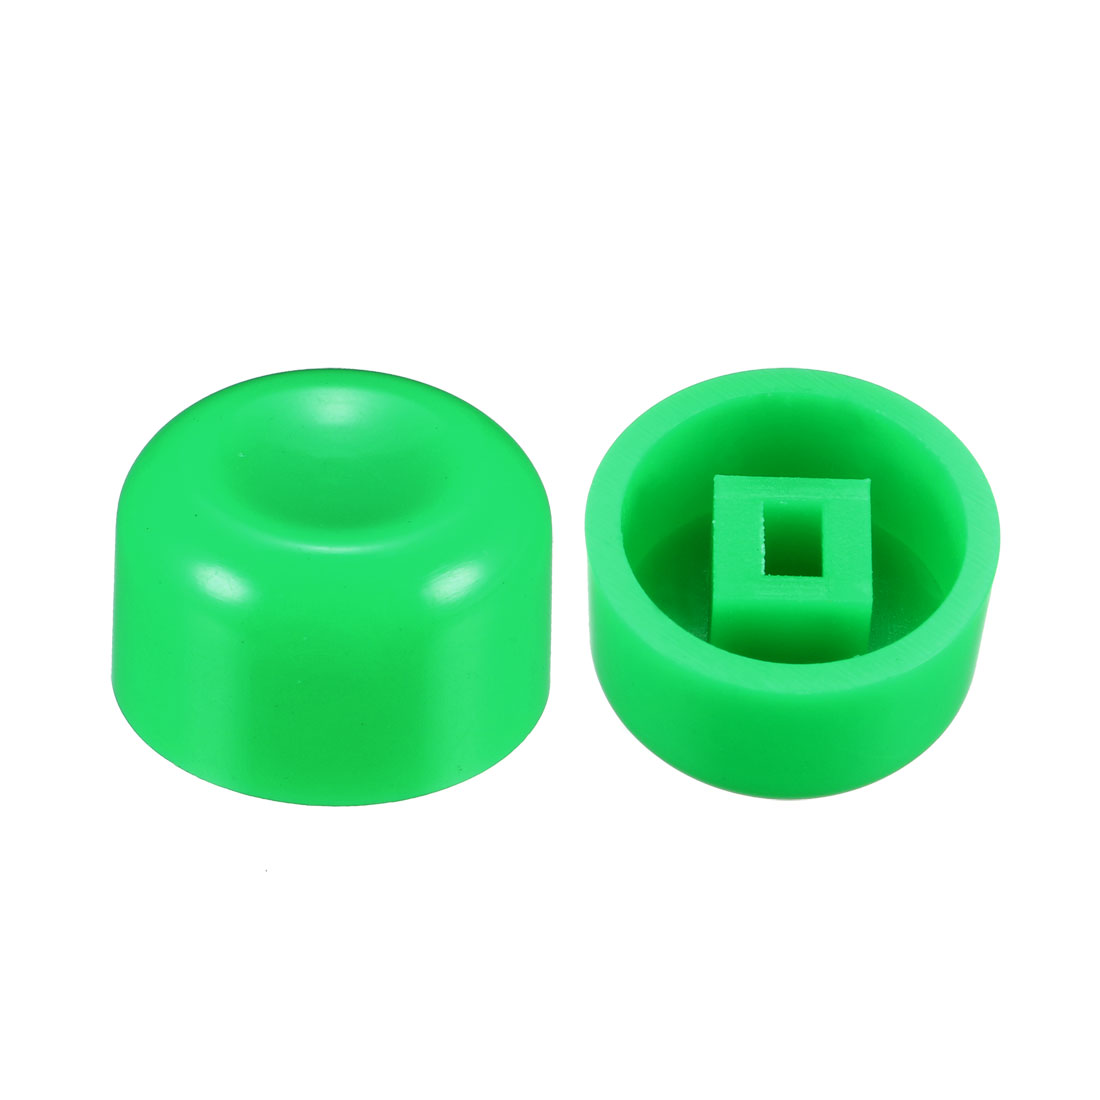 40Pcs Plastic 13.2x7.7mm Latching Pushbutton Tactile Switch Caps Cover Green